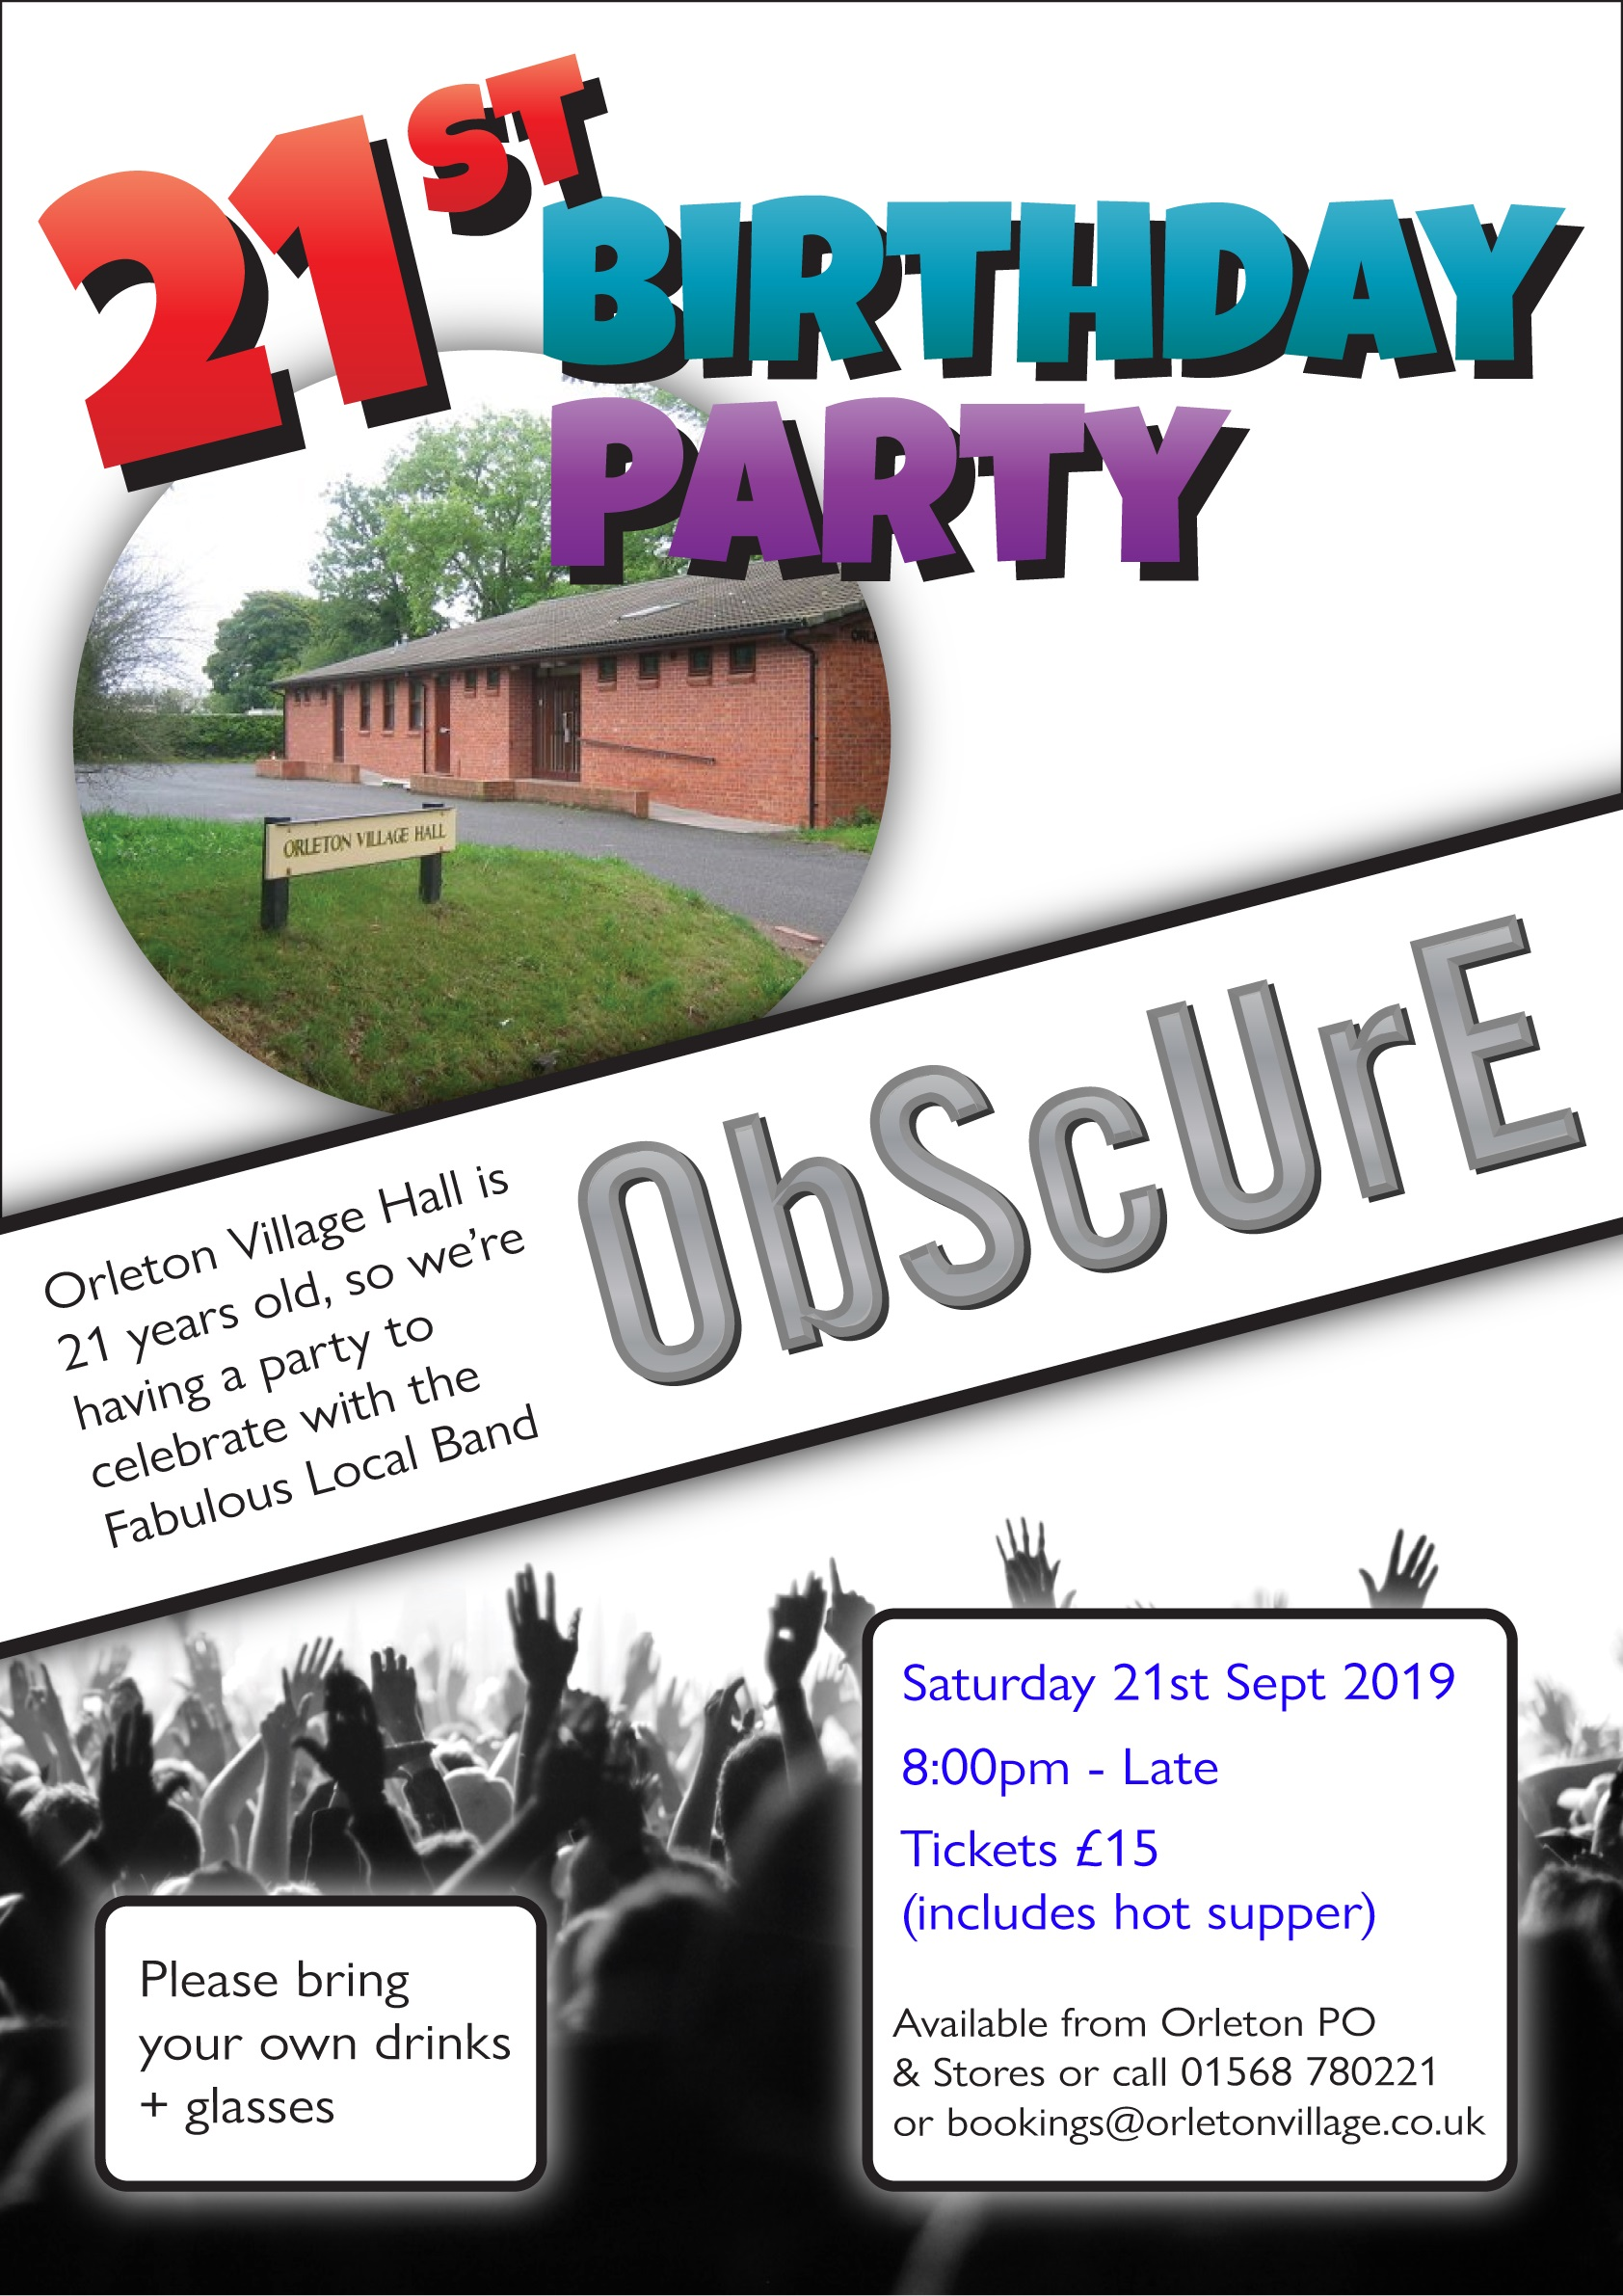 Orleton Village Hall's 21st Birthday Party